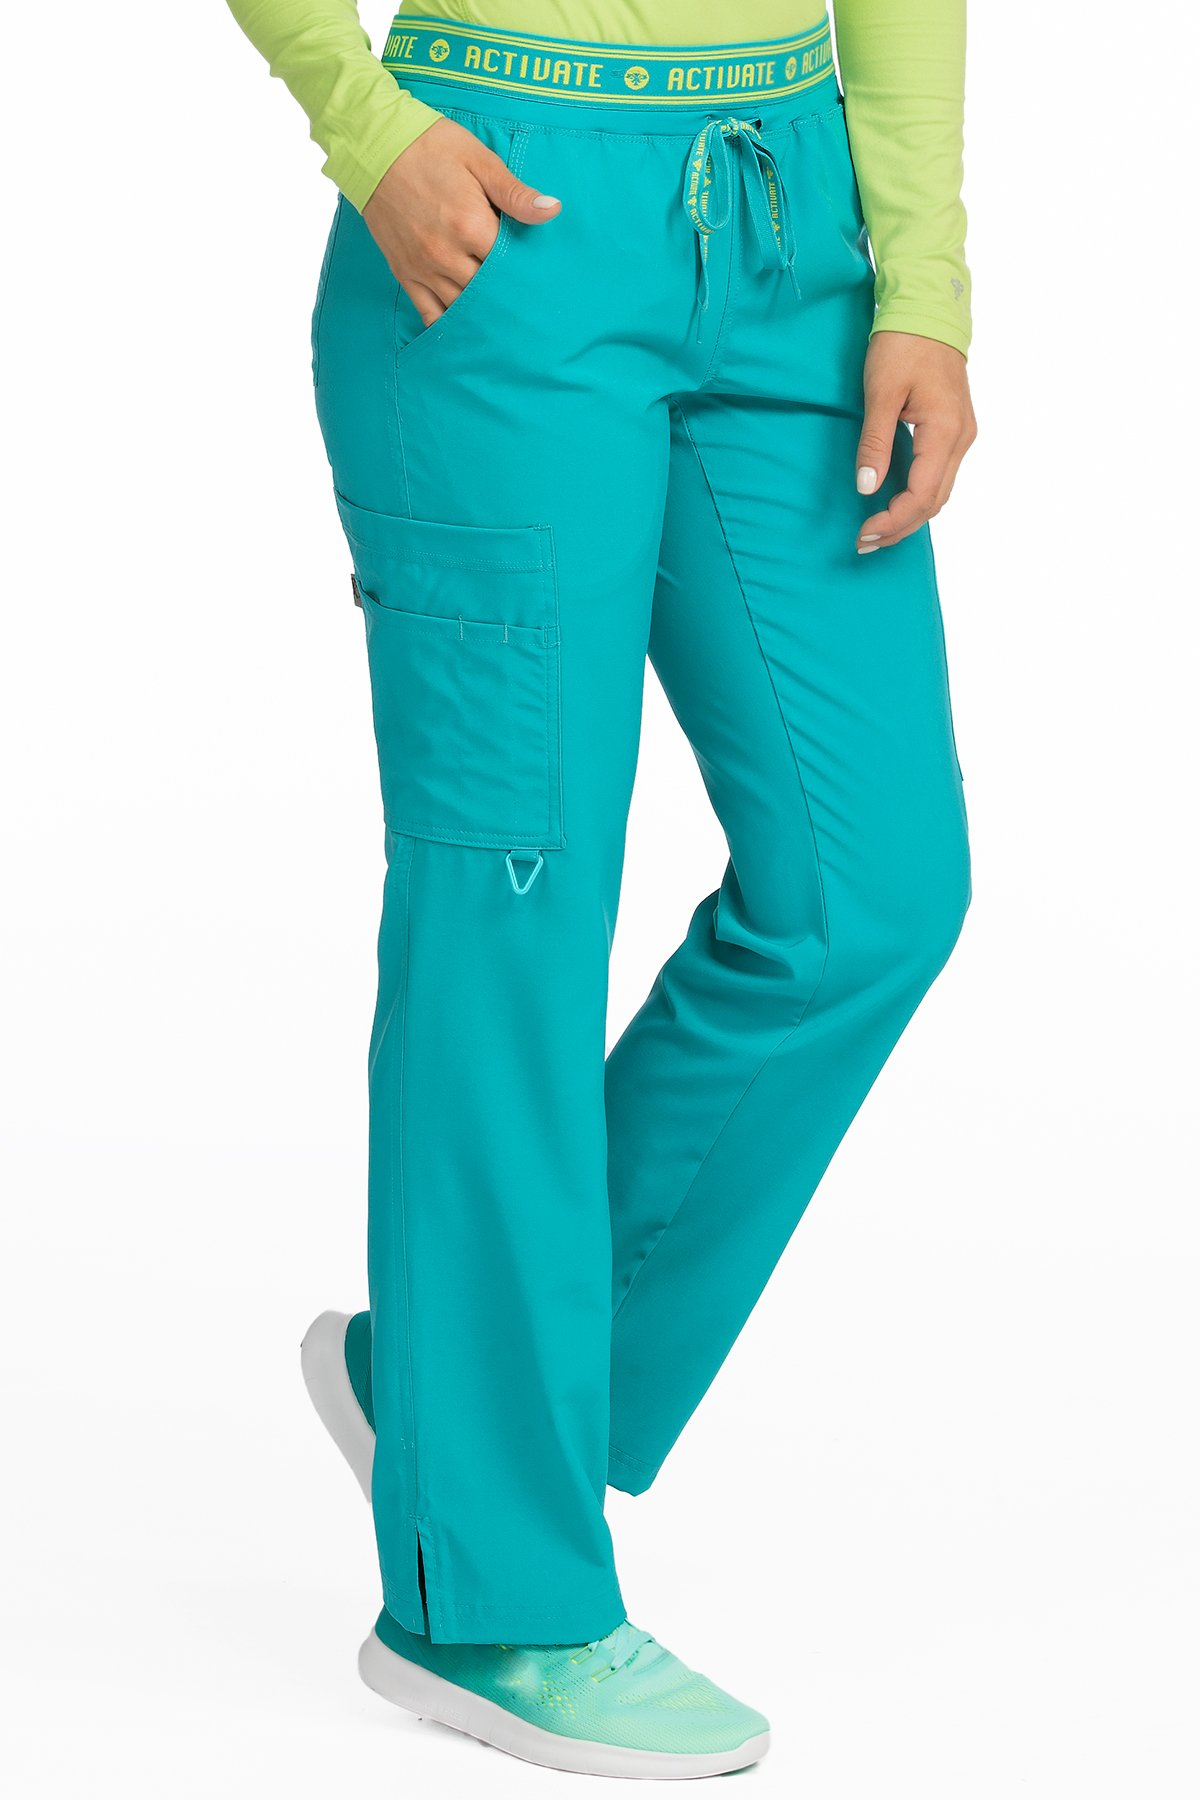 Med Couture Activate Scrub Pants Women, Flow Yoga 2 Cargo Pocket Pant, Aquamarine, Large Tall by Med Couture